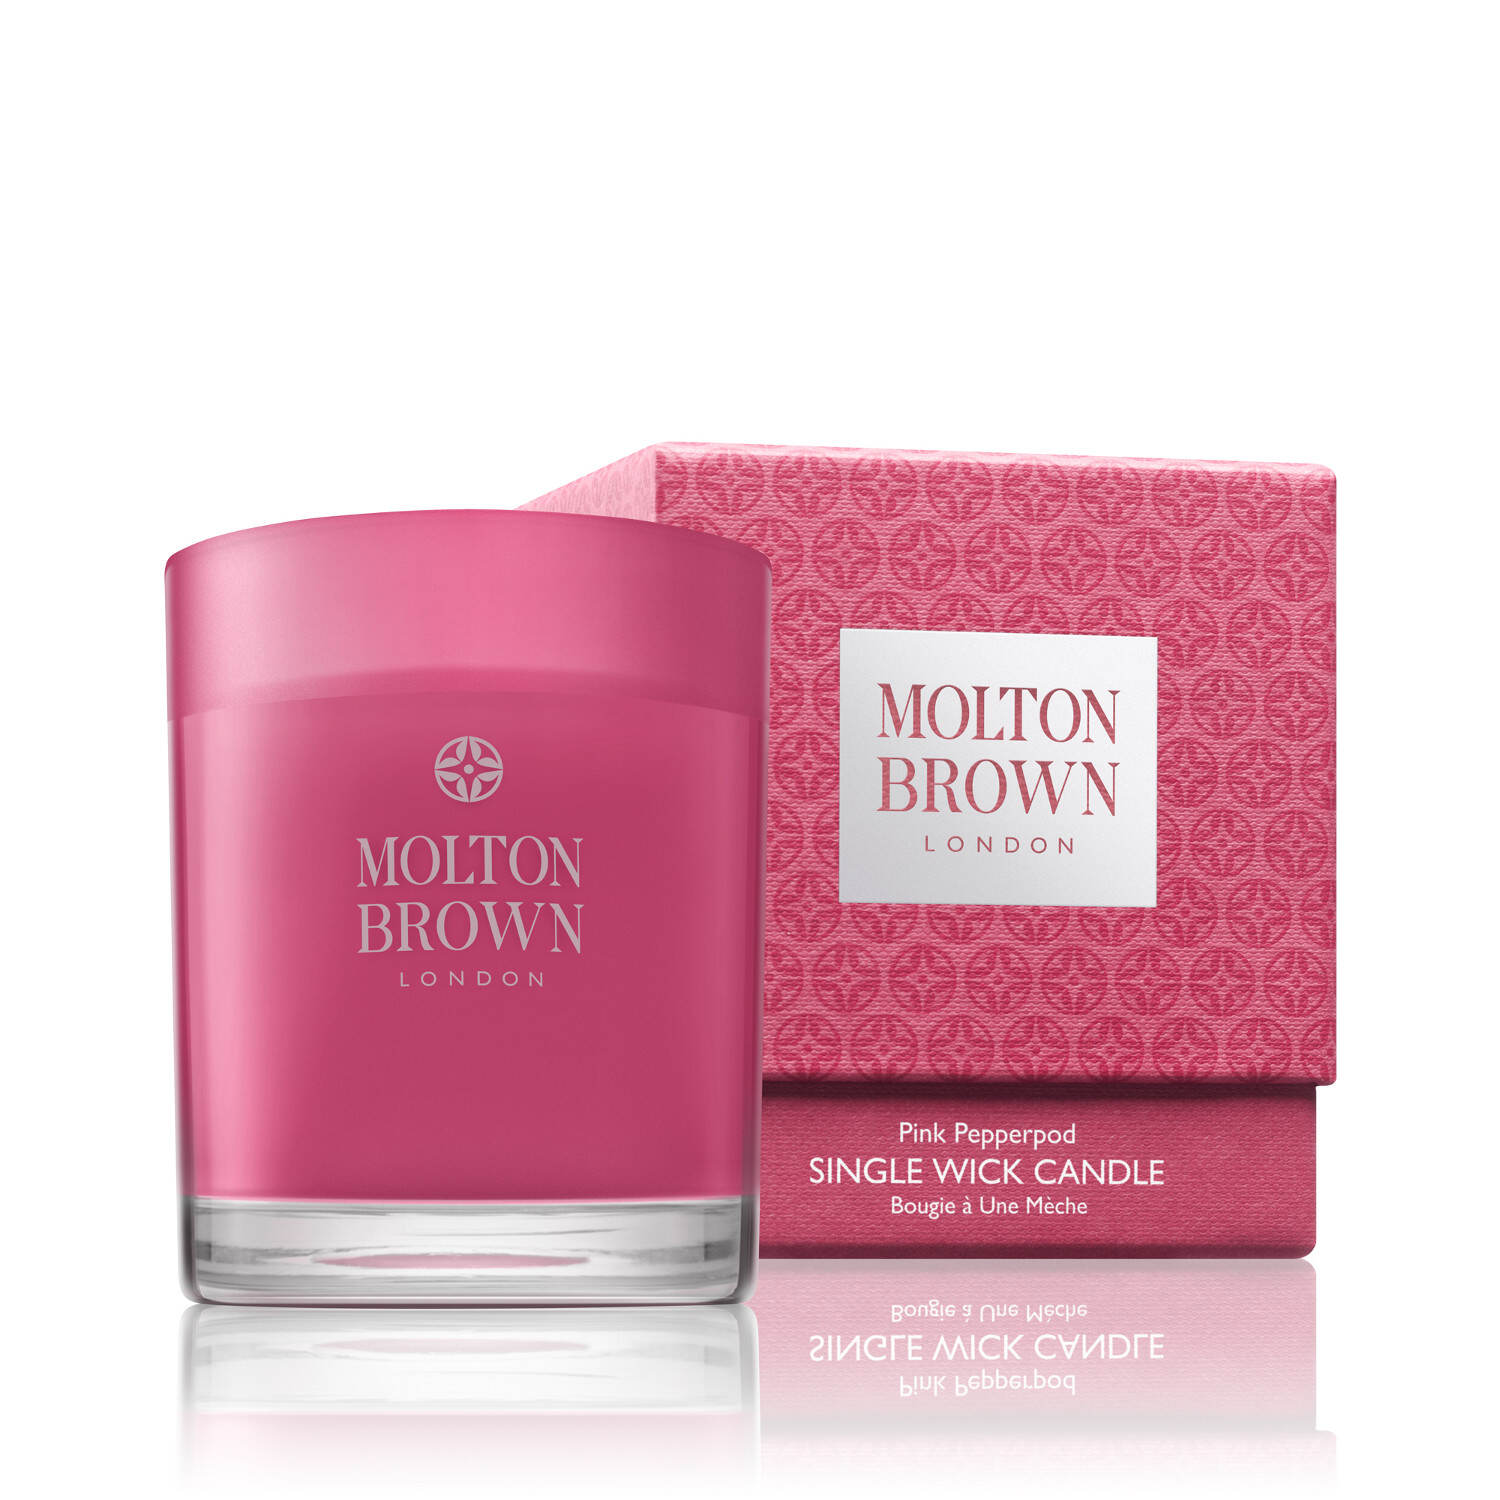 MOLTON BROWN Pink Pepperpod Candela 1 stoppino